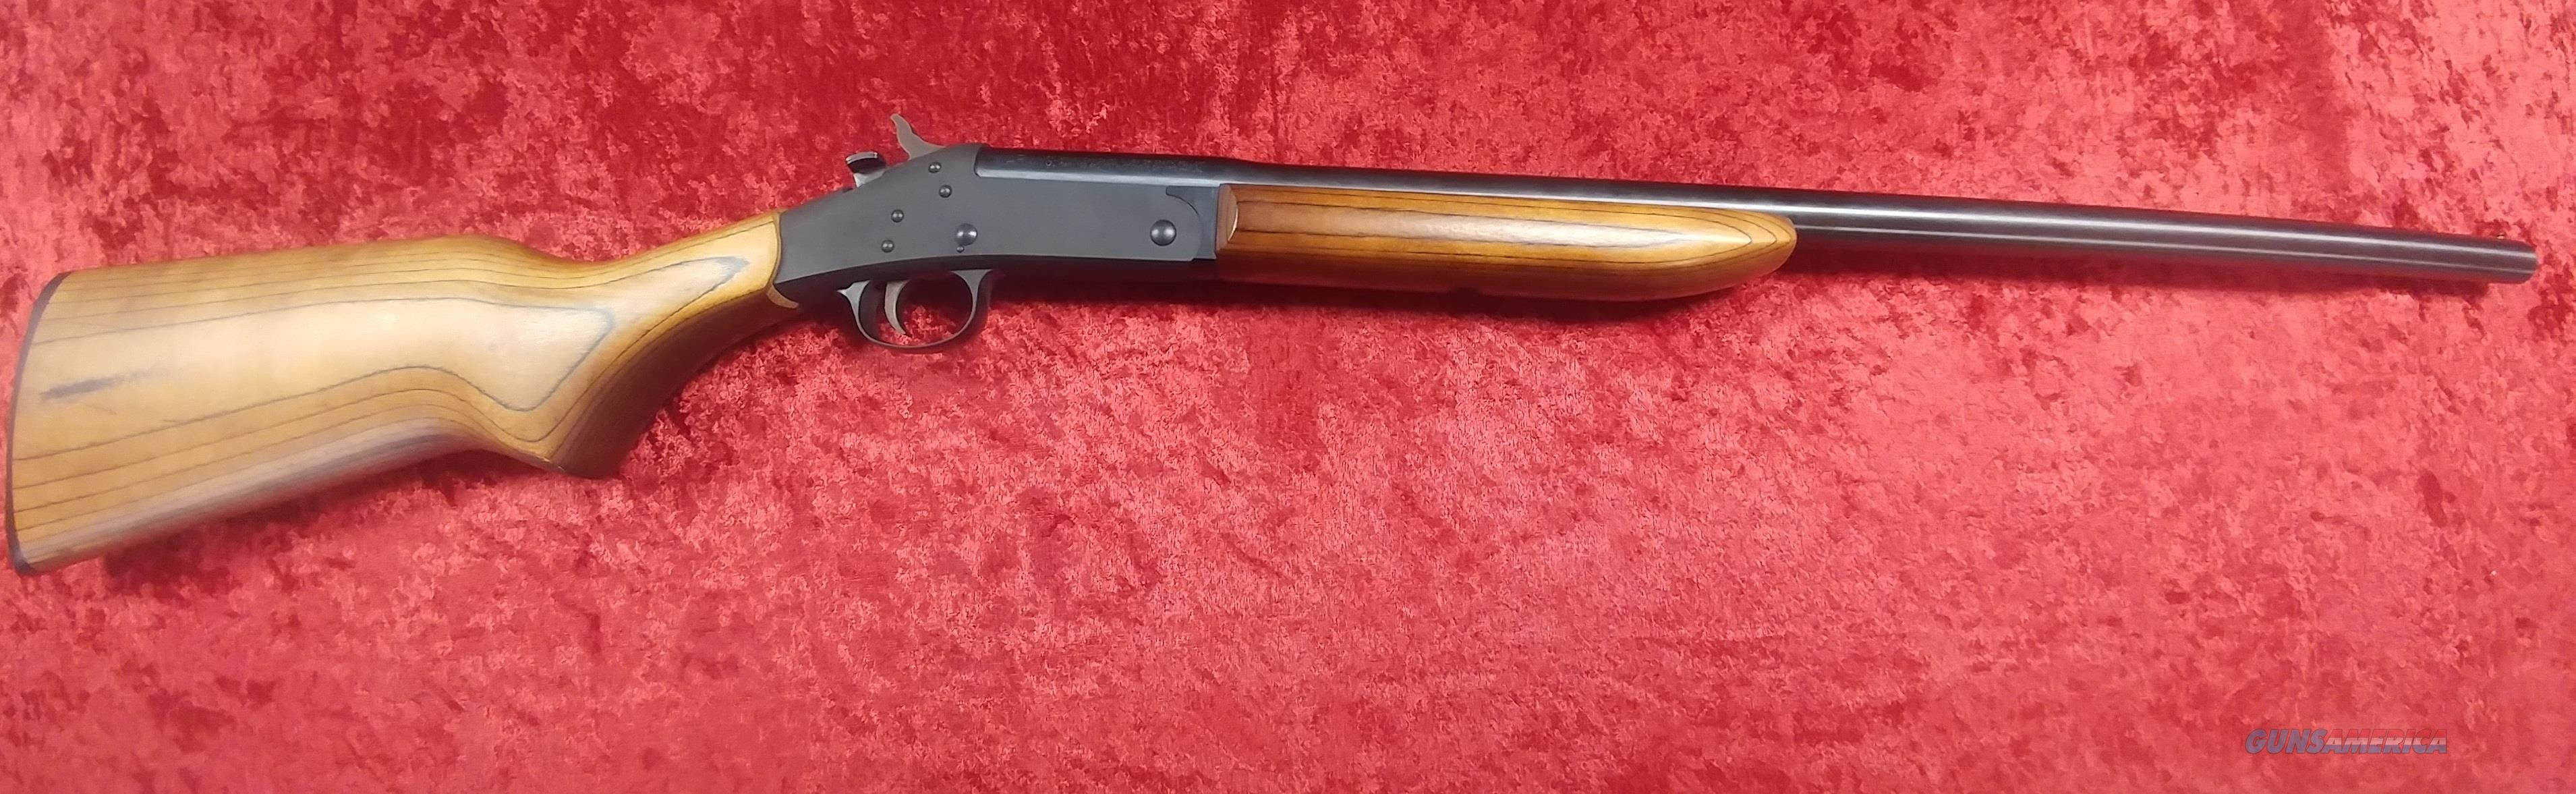 "H&R Pardner 20 ga., 25.5"" barrel  Guns > Shotguns > Harrington & Richardson Shotguns"